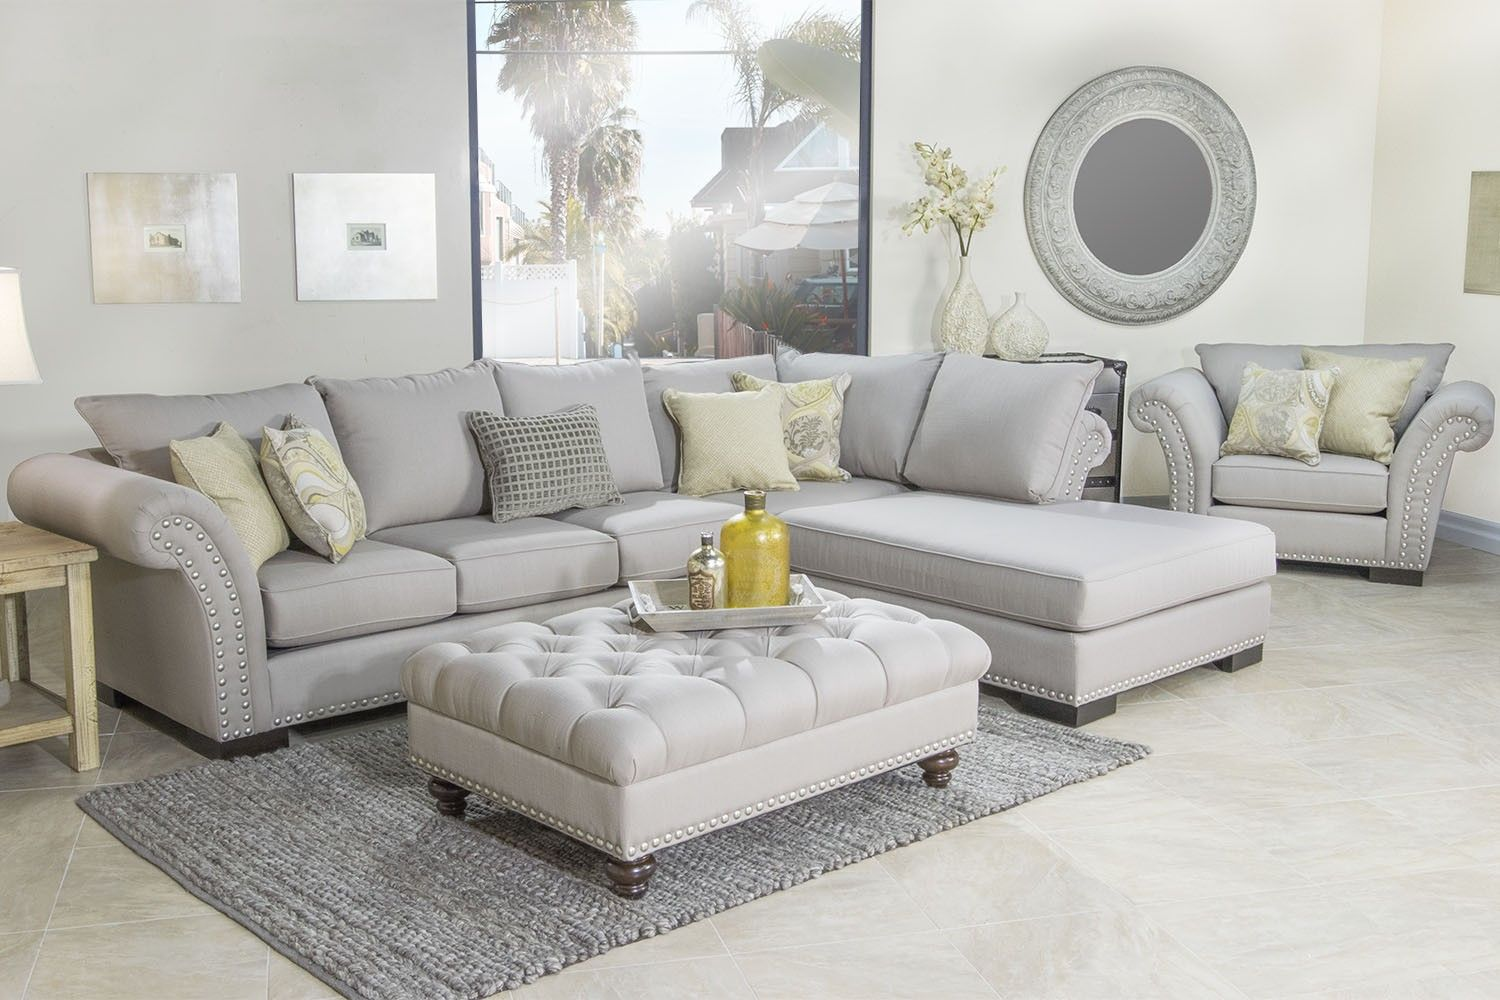 Klein Left Facing Sectional Sectionals Living Room Mor Furniture For Less